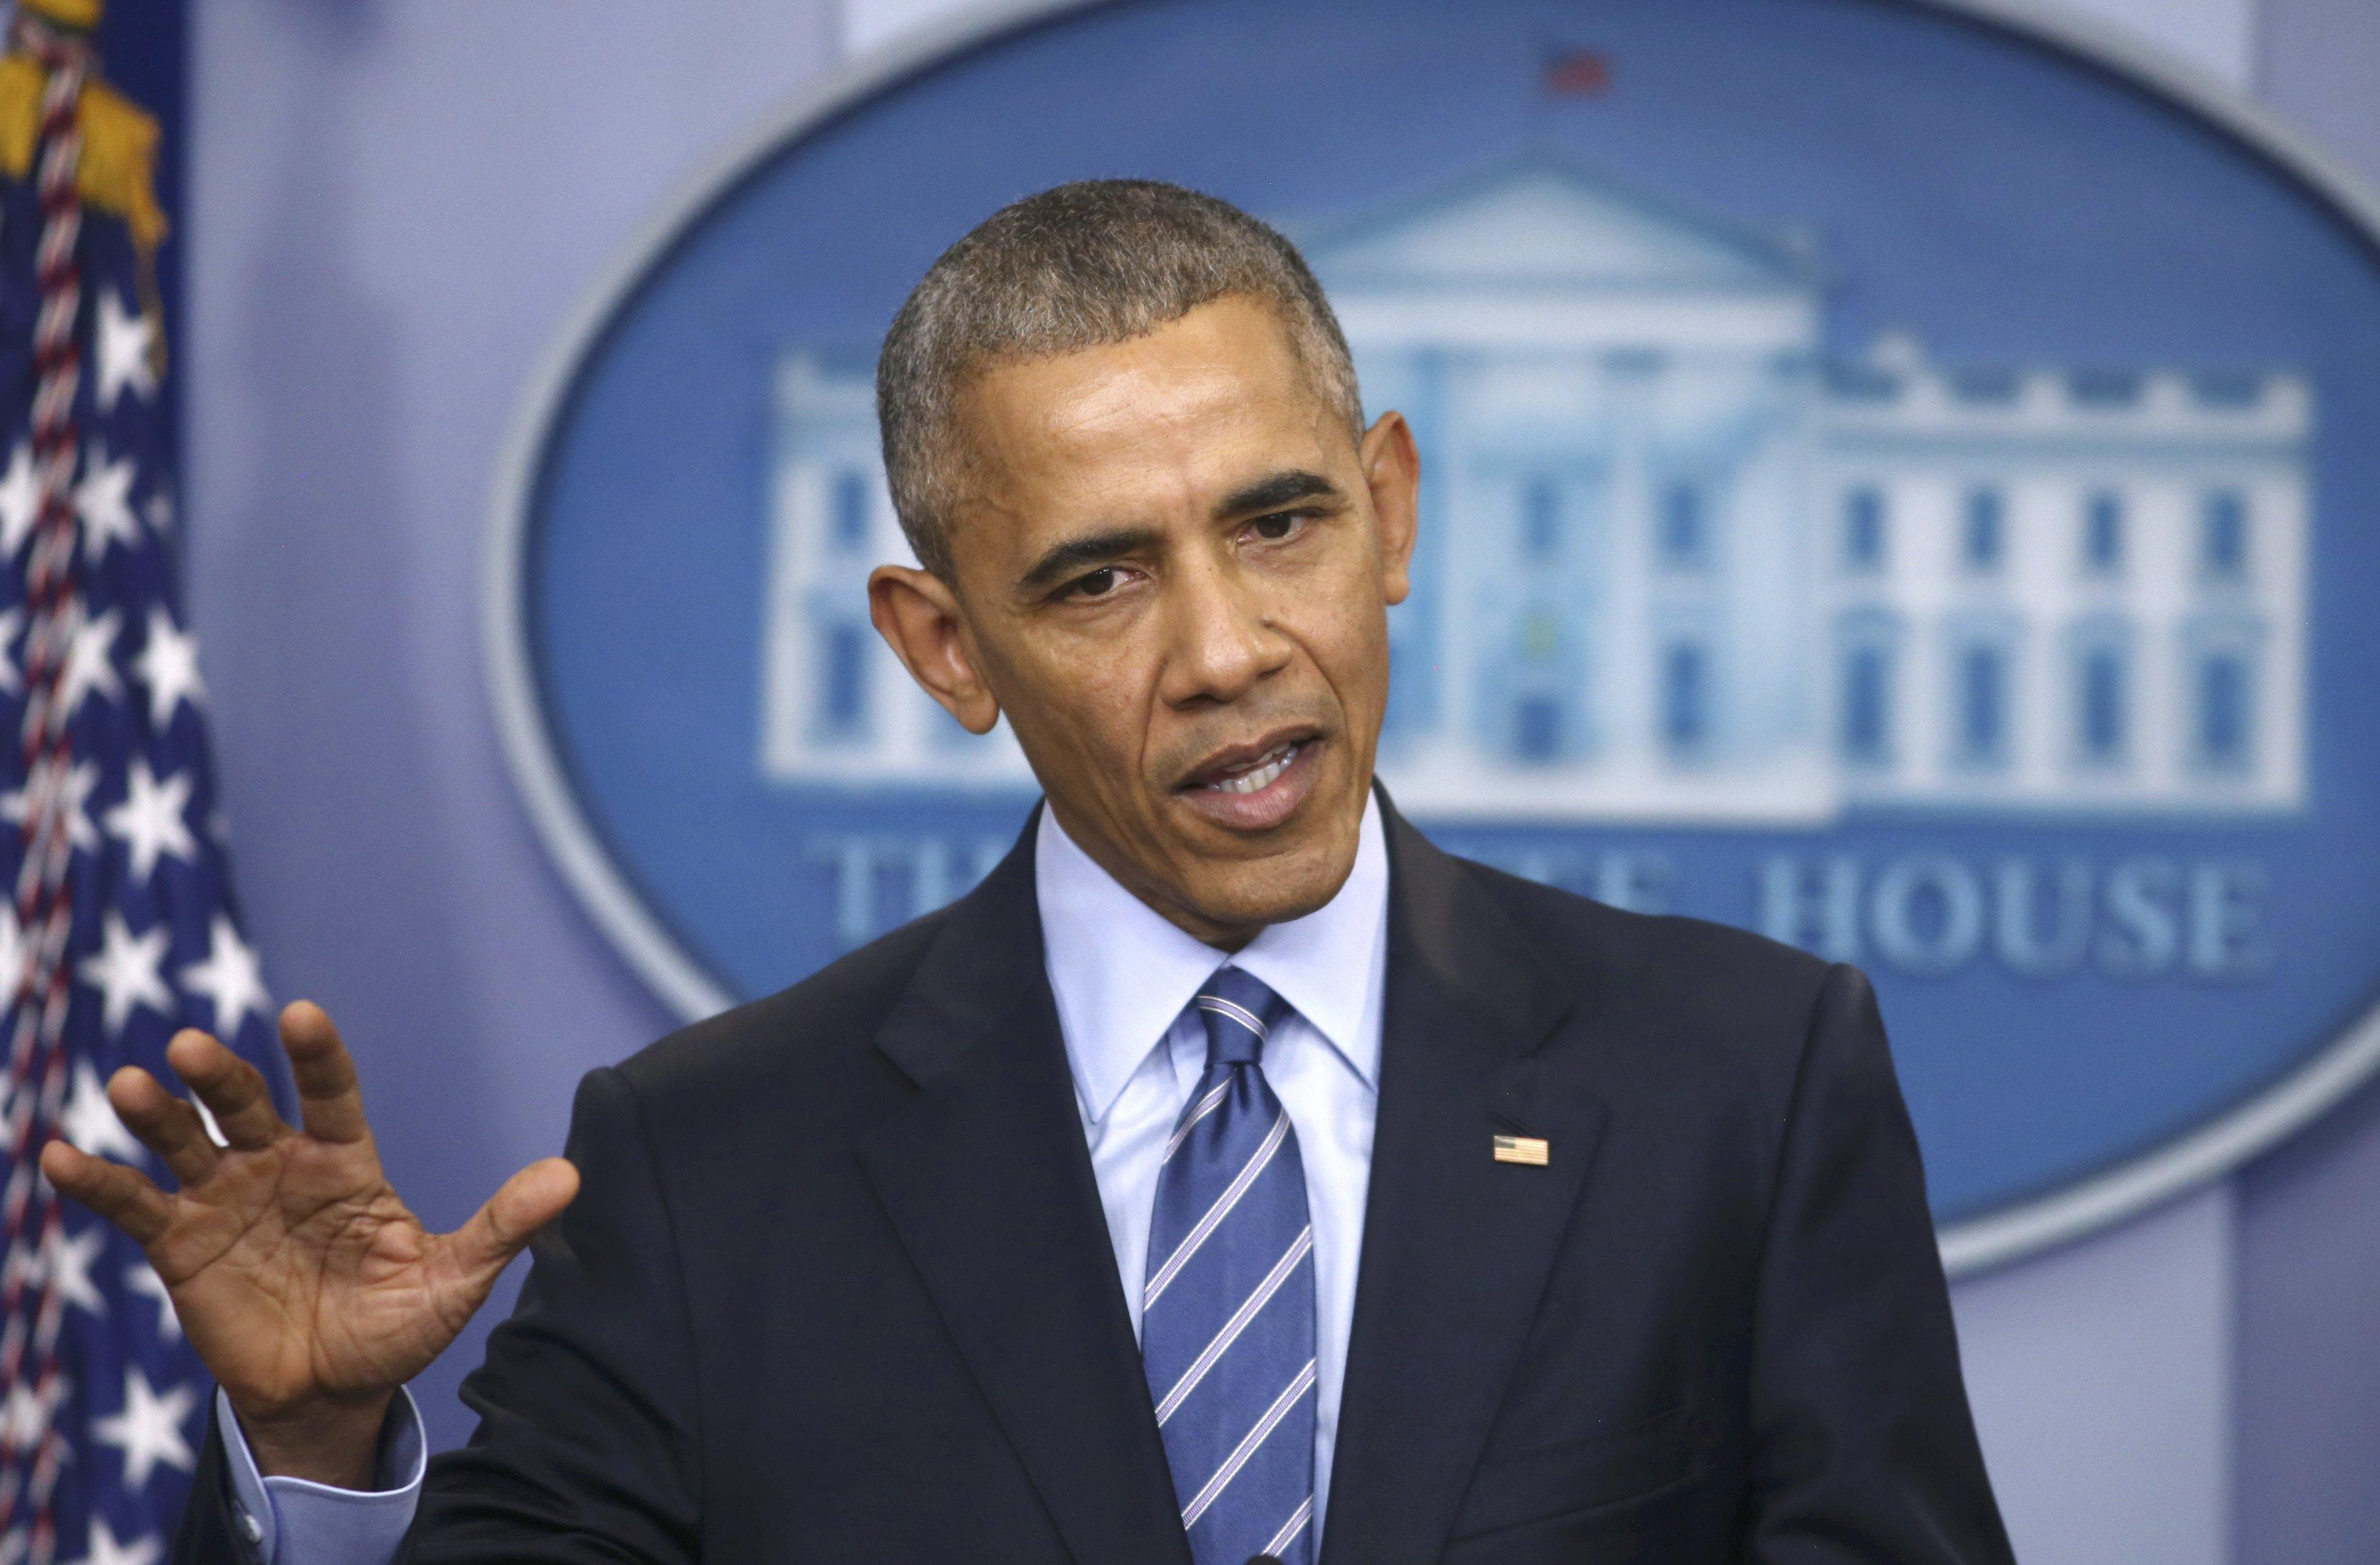 aea9fad5 Obama press conference: The president calls Electoral College a